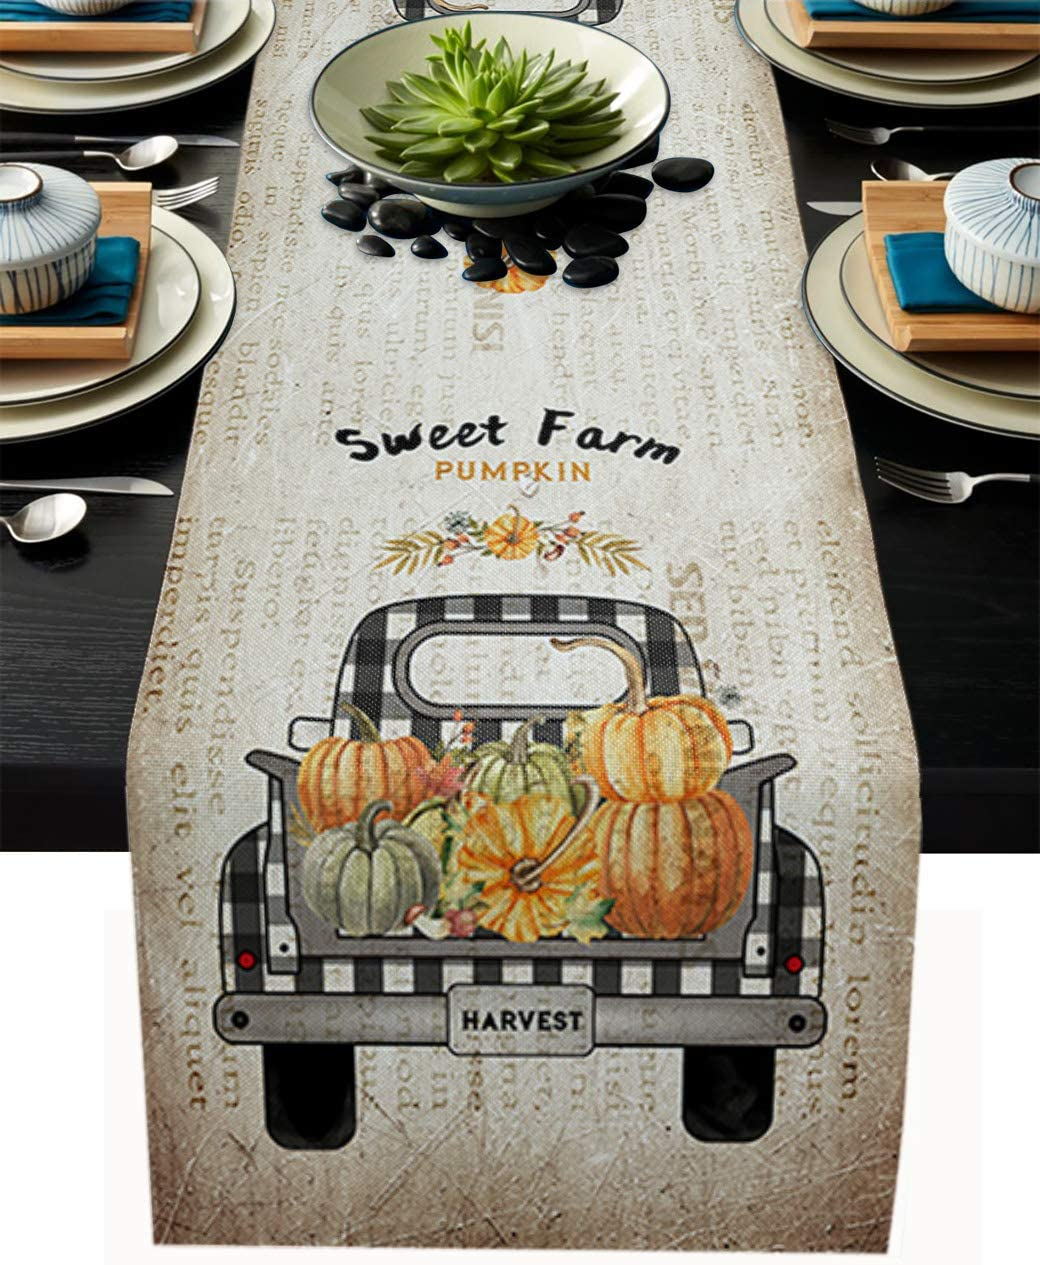 Linen Burlap Table Runner Sweet Farm Pumpkin Dresser Scarf Table Decorations for Everyday Use, 14x72 Inch Table Runners for Dinner Parties & Events, Retro Autumn Harvest Thanksgiving Truck